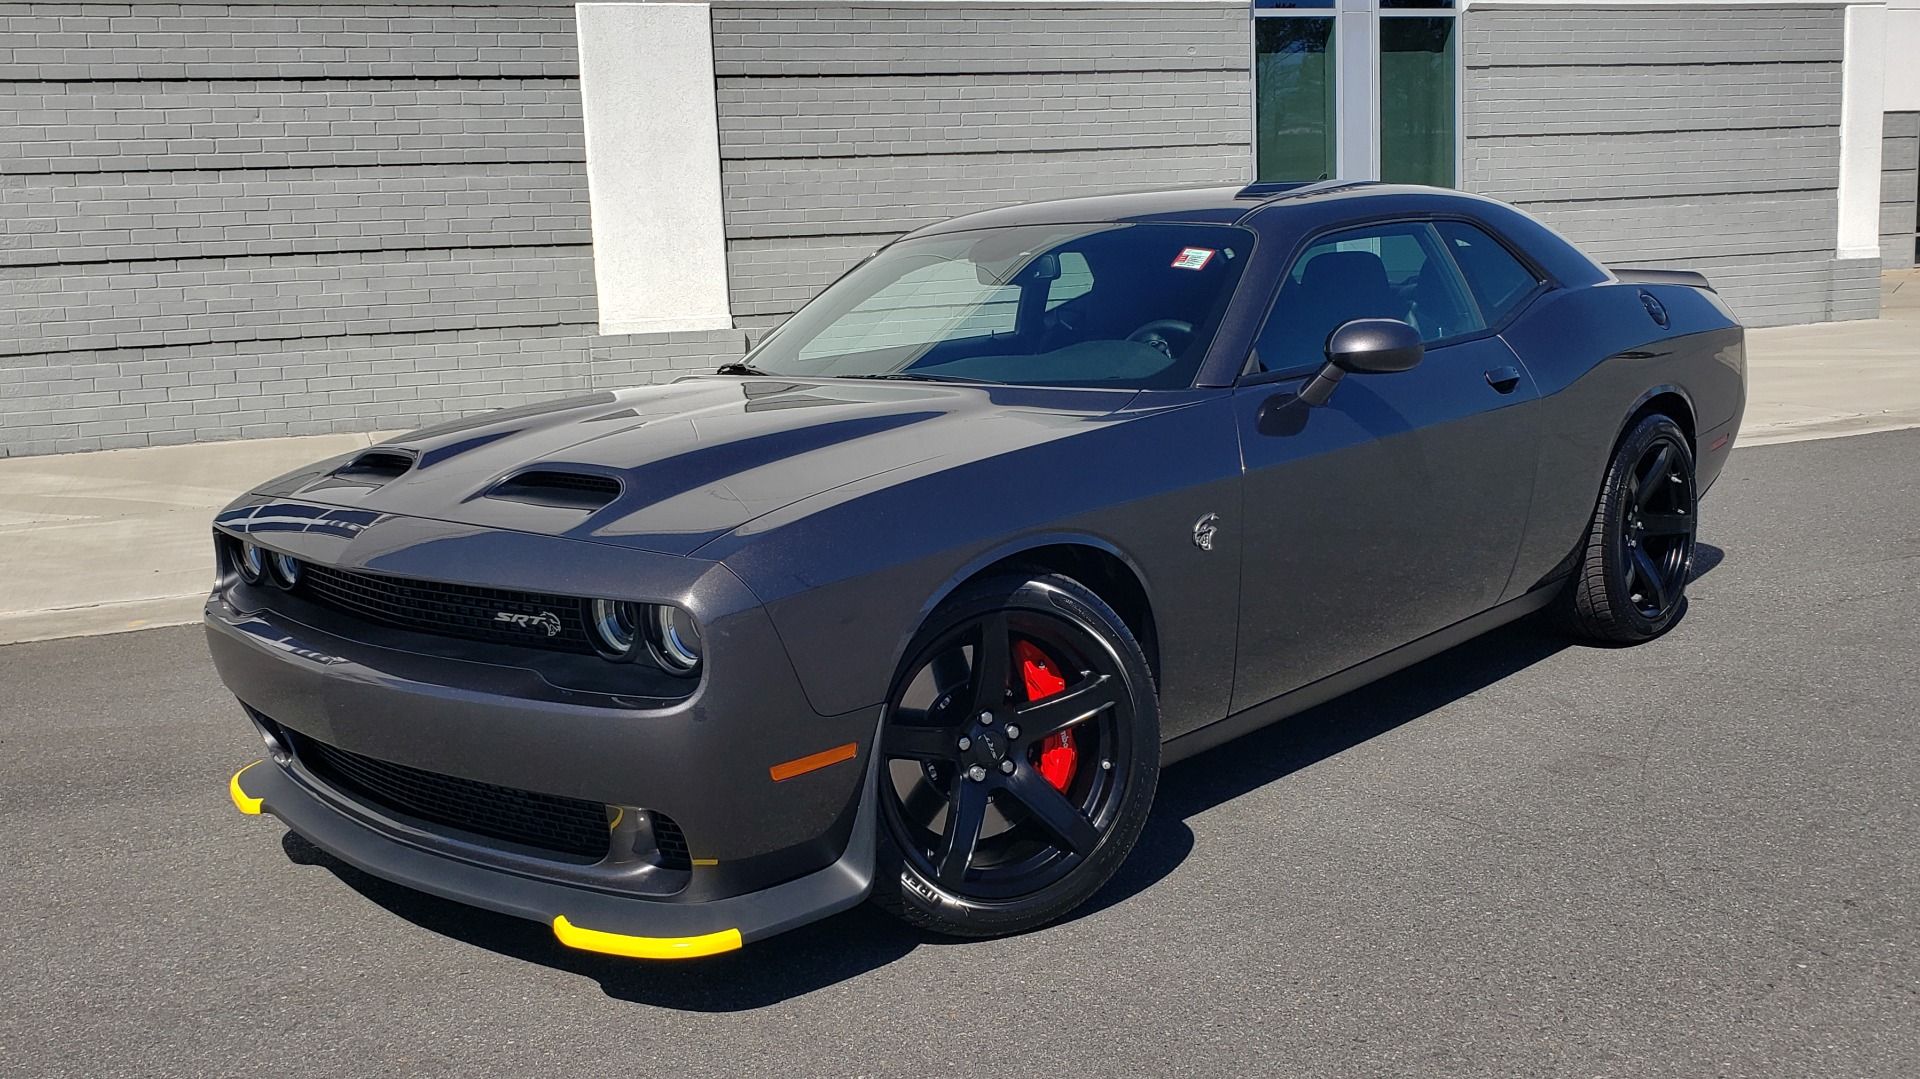 Used 2020 Dodge CHALLENGER SRT HELLCAT (717HP) / NAV / AUTO / CLOTH / REARVIEW / LOW MILES for sale $64,999 at Formula Imports in Charlotte NC 28227 1